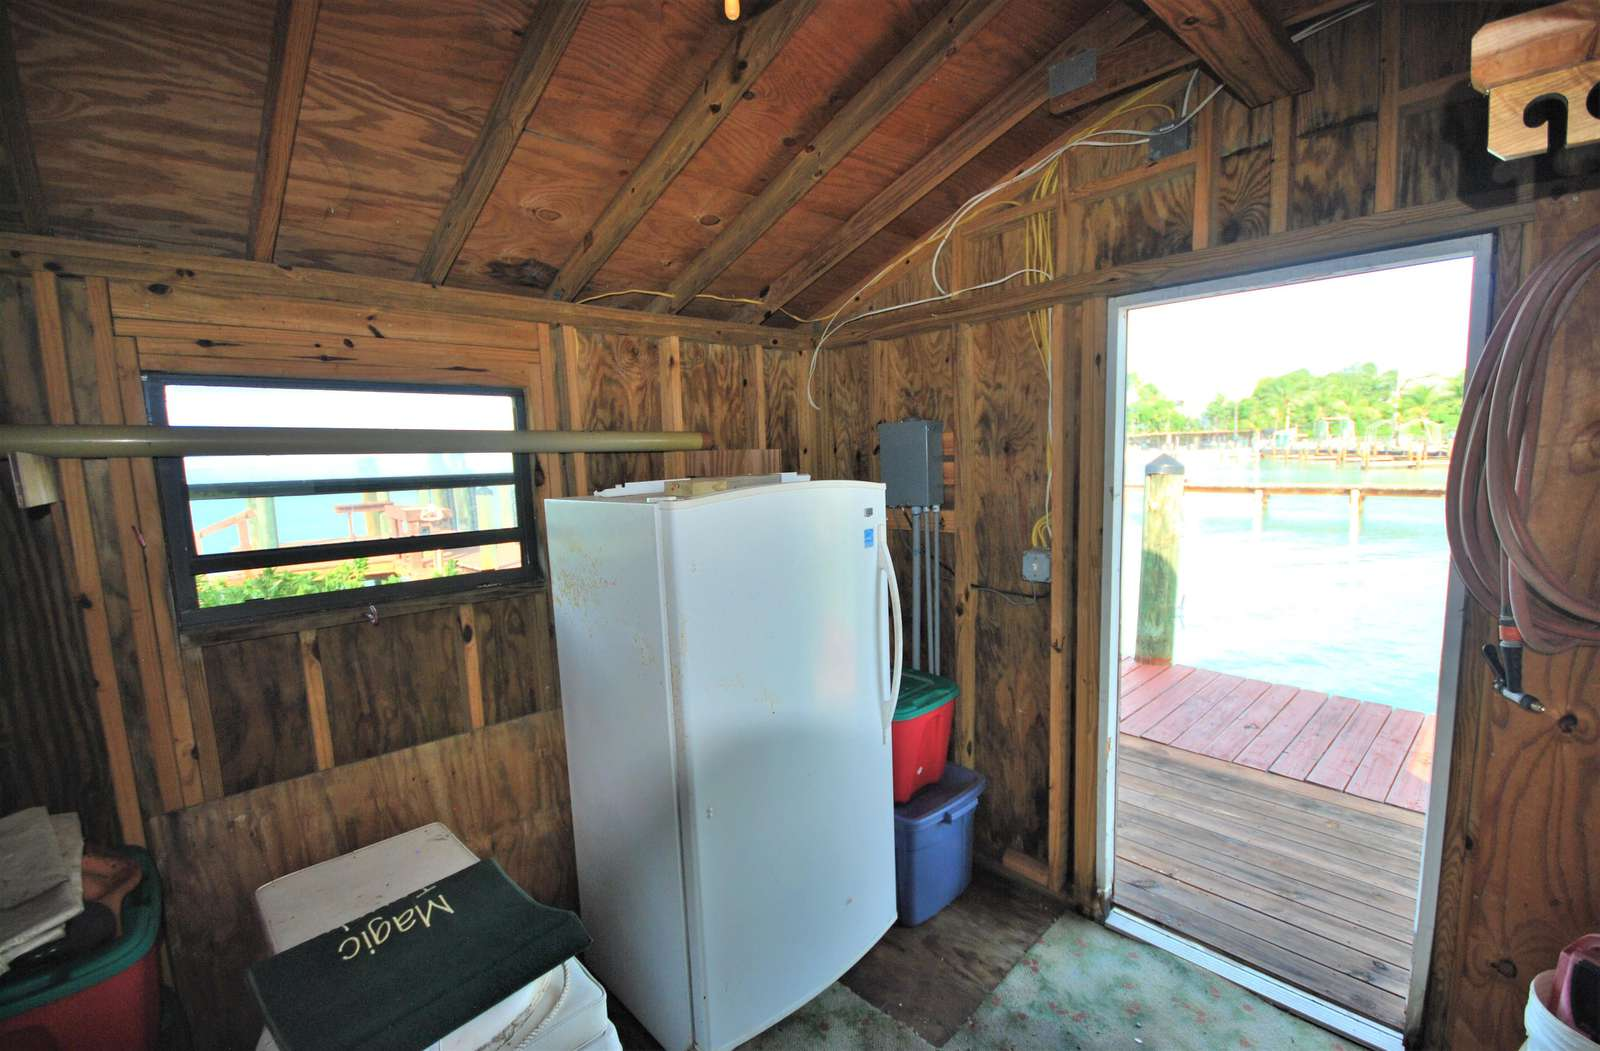 The Boat House offers a full size bait freezer or pre-freeze your catch for the return trip home.